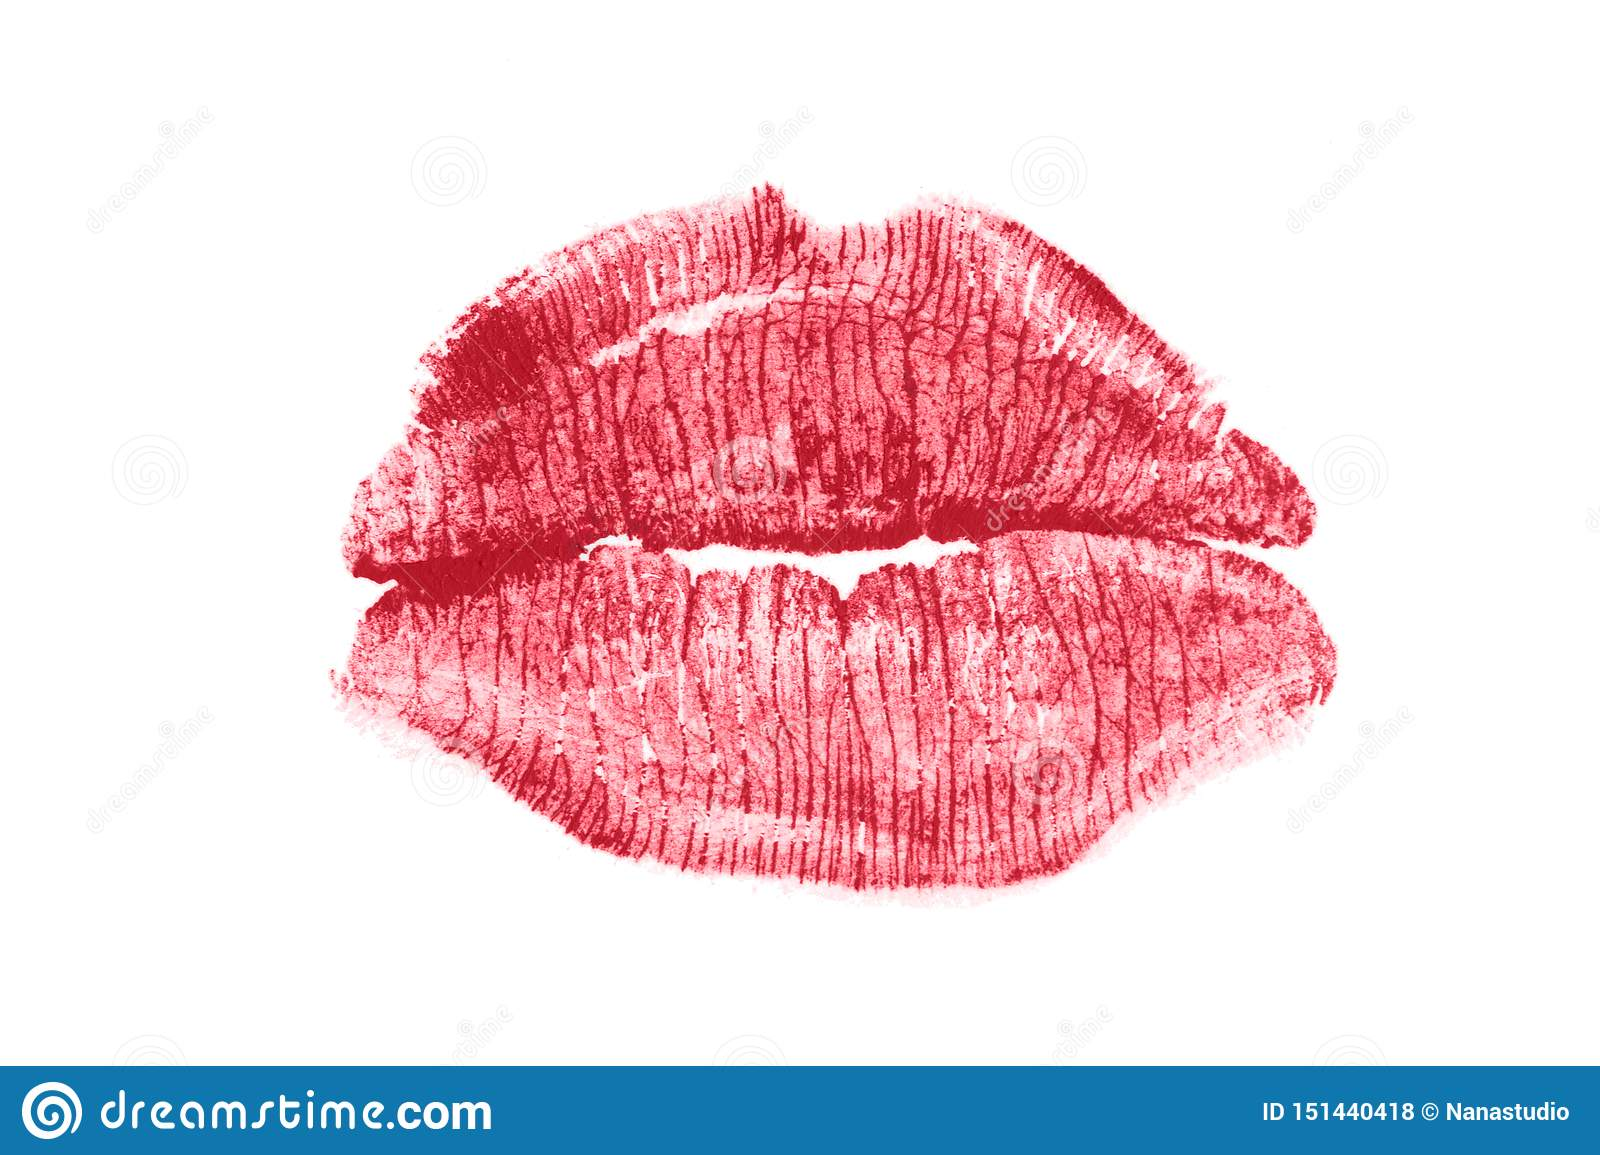 13 288 Lipstick Kiss Photos Free Royalty Free Stock Photos From Dreamstime 3 076 lipstick kiss stock video clips in 4k and hd for creative projects. https www dreamstime com red lipstick kiss isolated white background image151440418